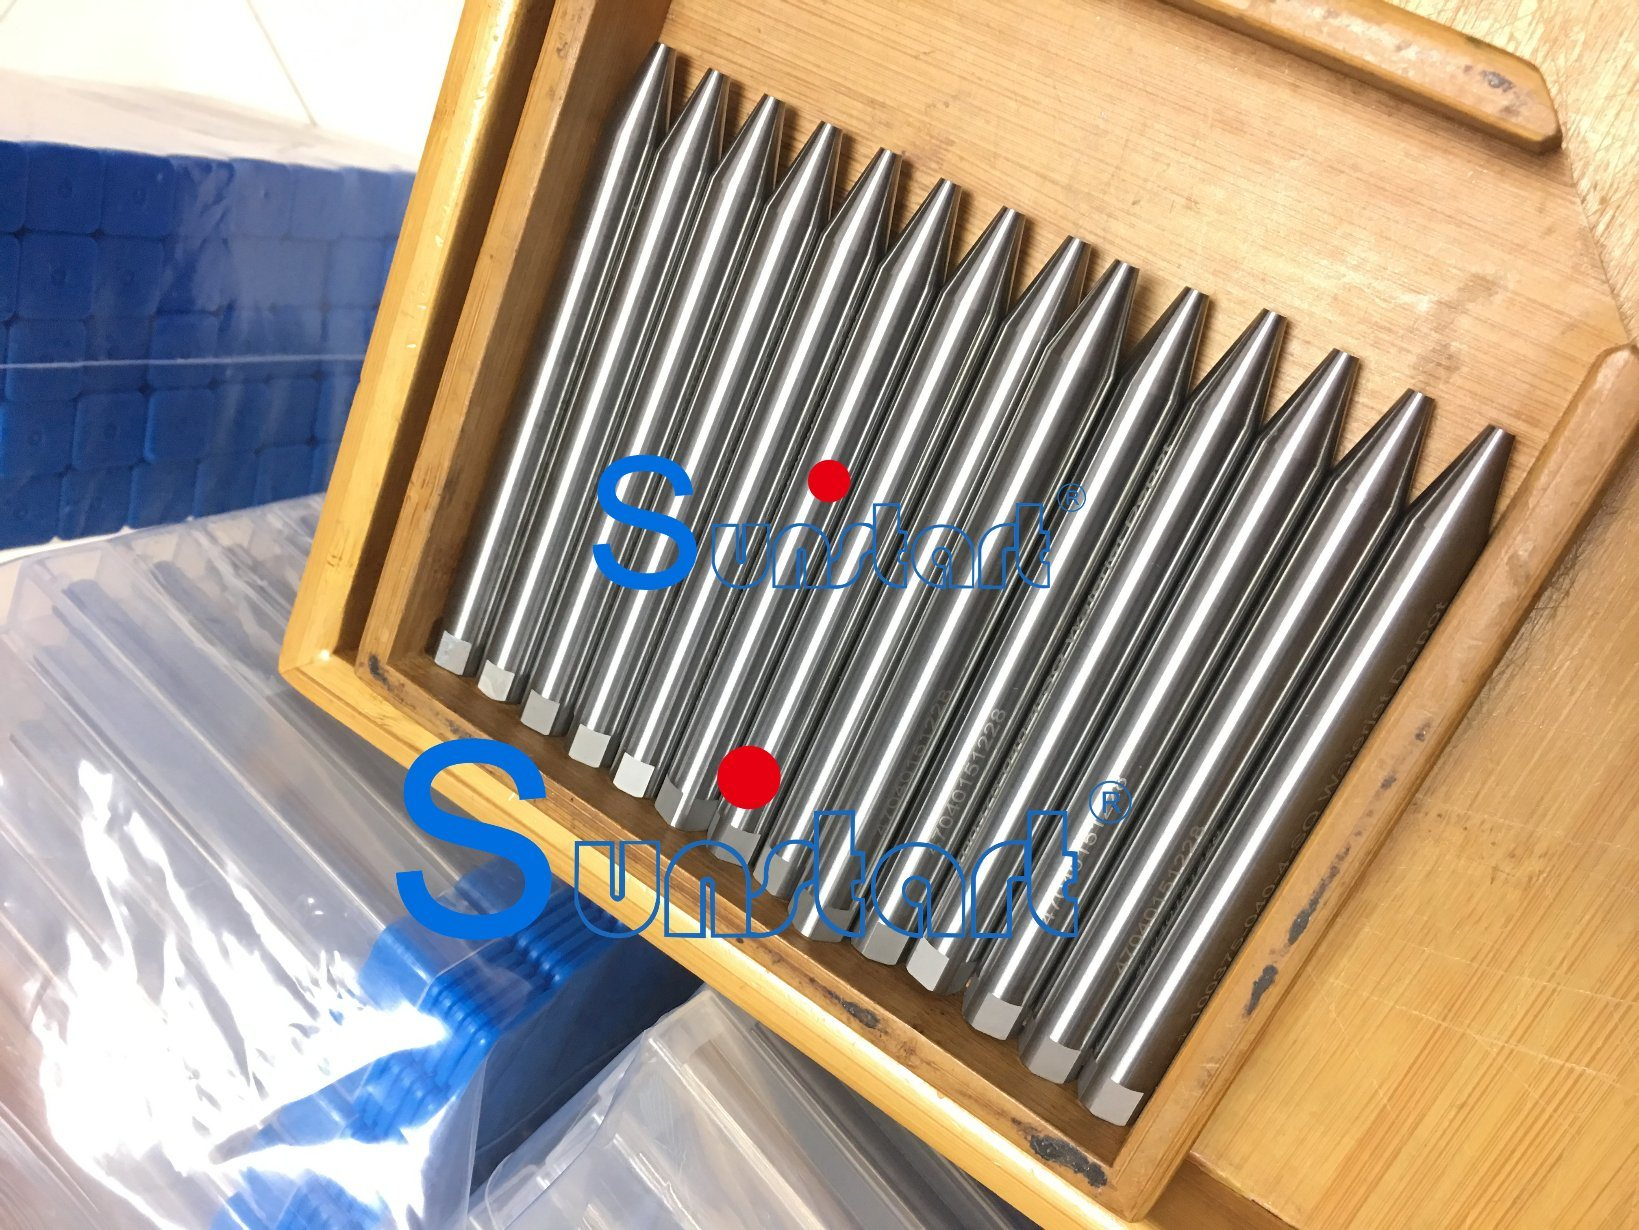 Waterjet Mixing Tube Spare Parts for Omax Waterjet Standard Machine From Sunstart